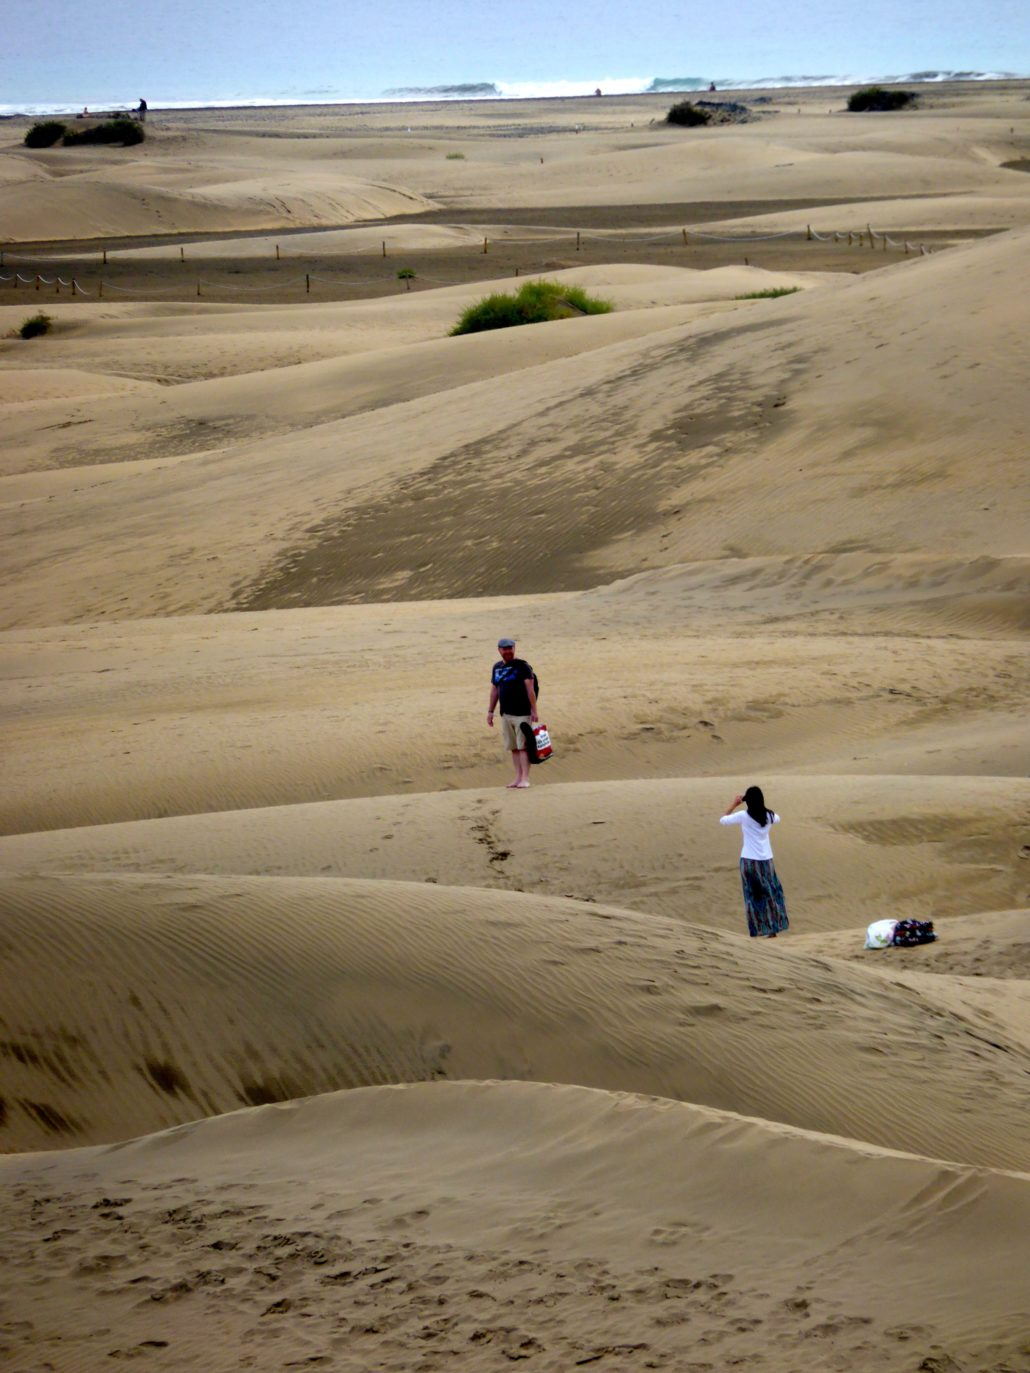 The sand was imported from the Sahara to create Maspalomas beach